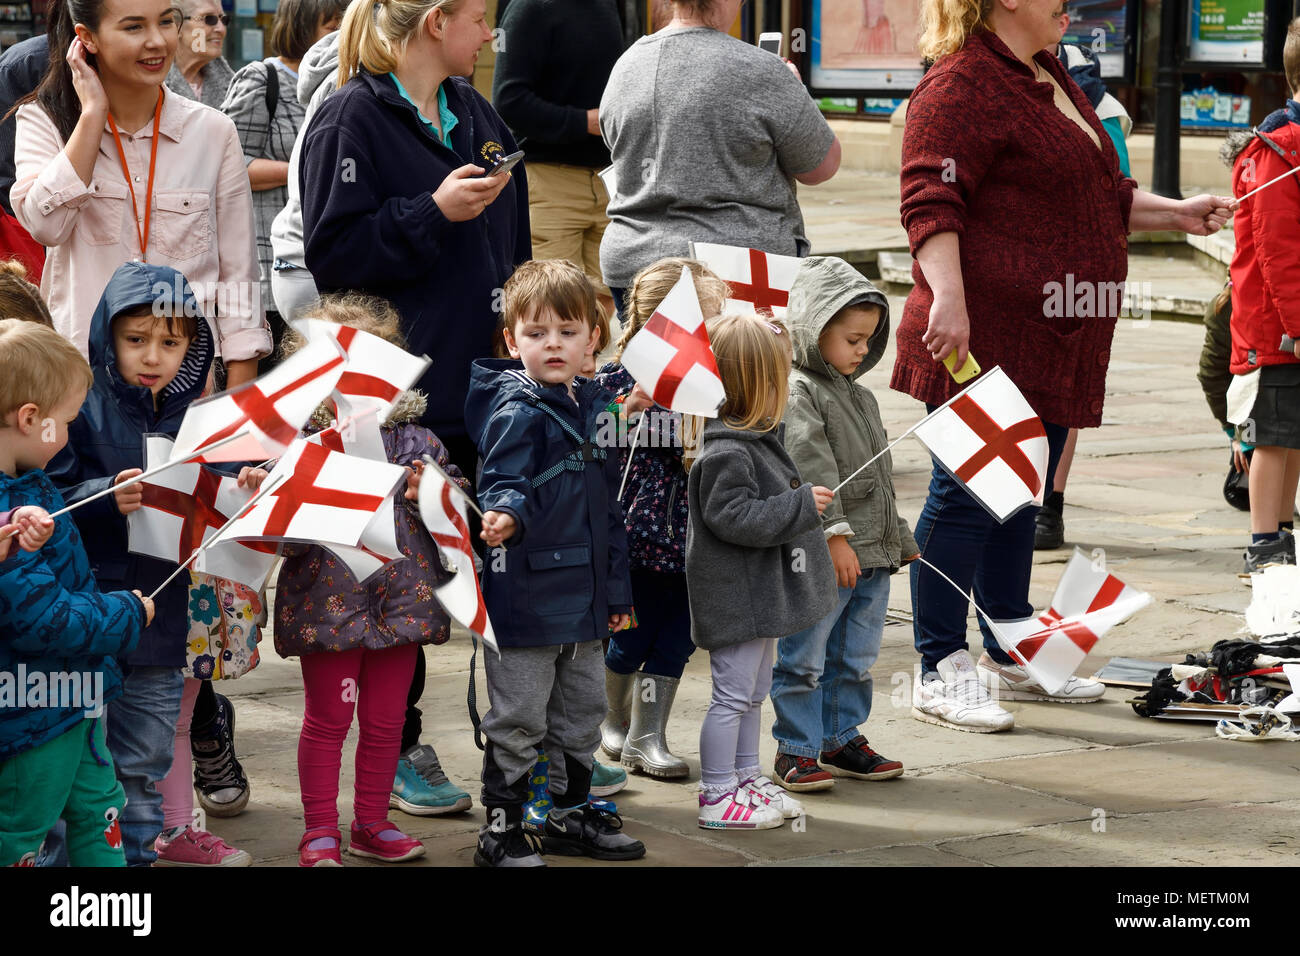 Chester, UK. 23rd April 2018. Children wave flags at the St George's Day parade through the city centre. The parade includes street performance, theatre and music with local school children performing many supporting roles. Credit: Andrew Paterson/Alamy Live News - Stock Image